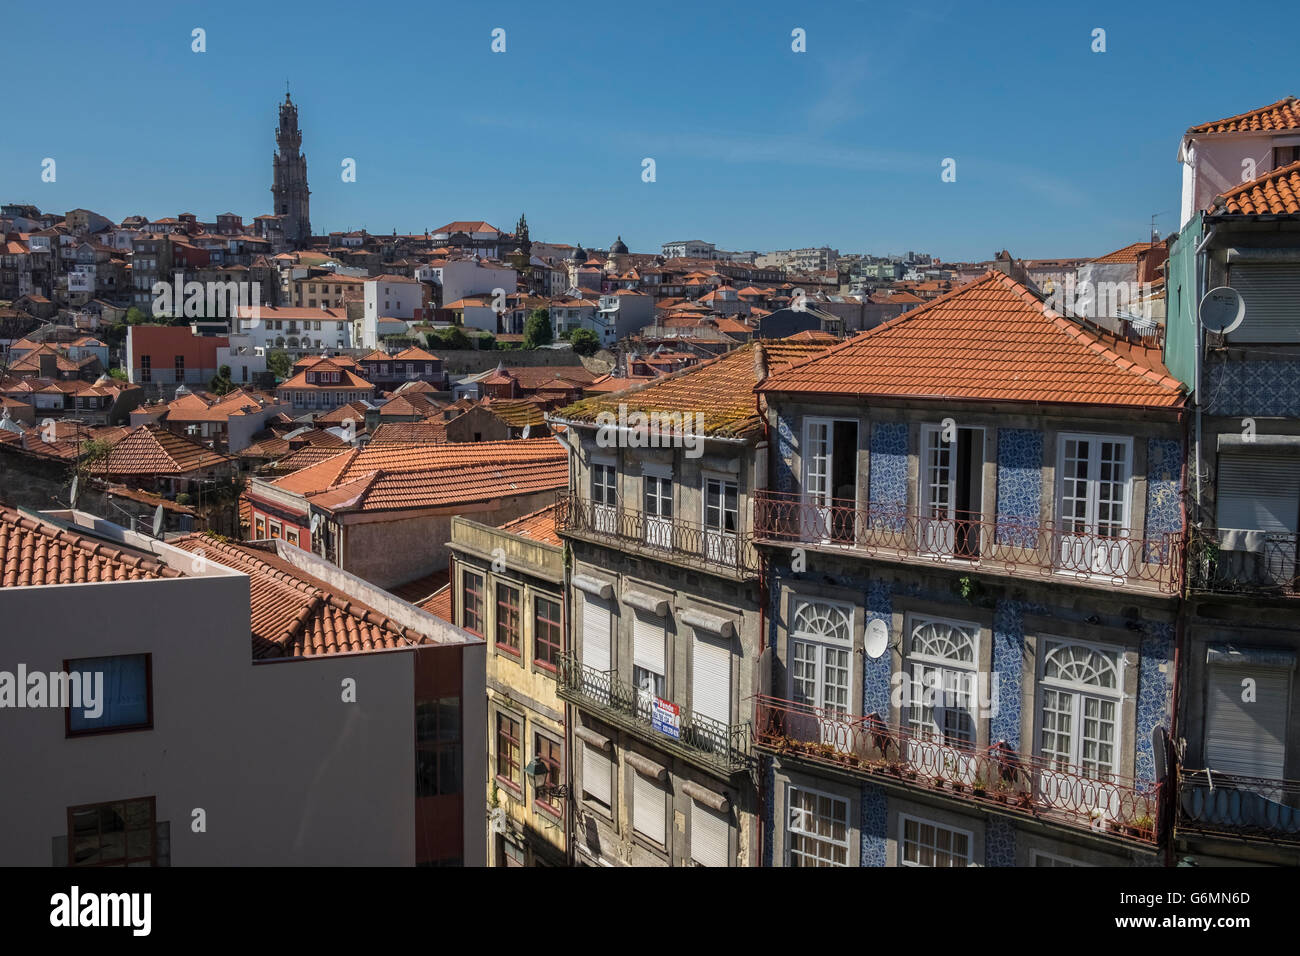 Traditional buildings in the historic Ribeira district of Porto, Portugal - Stock Image